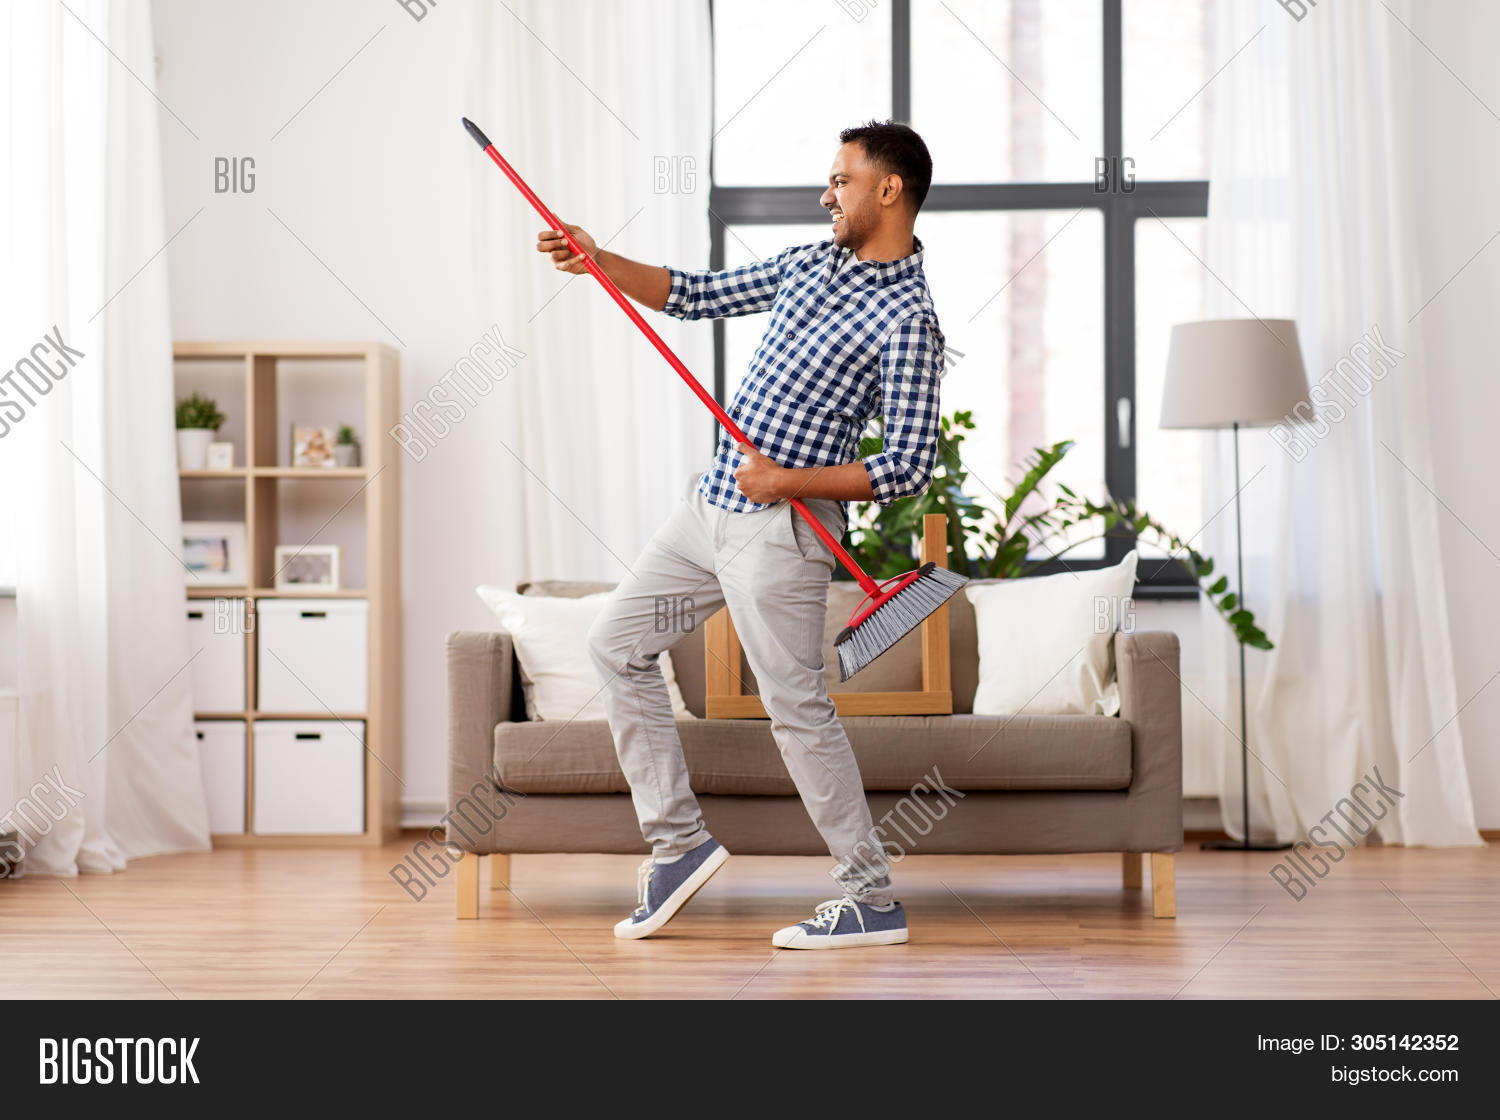 cleaning, housework and housekeeping concept - indian man with broom sweeping floor and having fun a